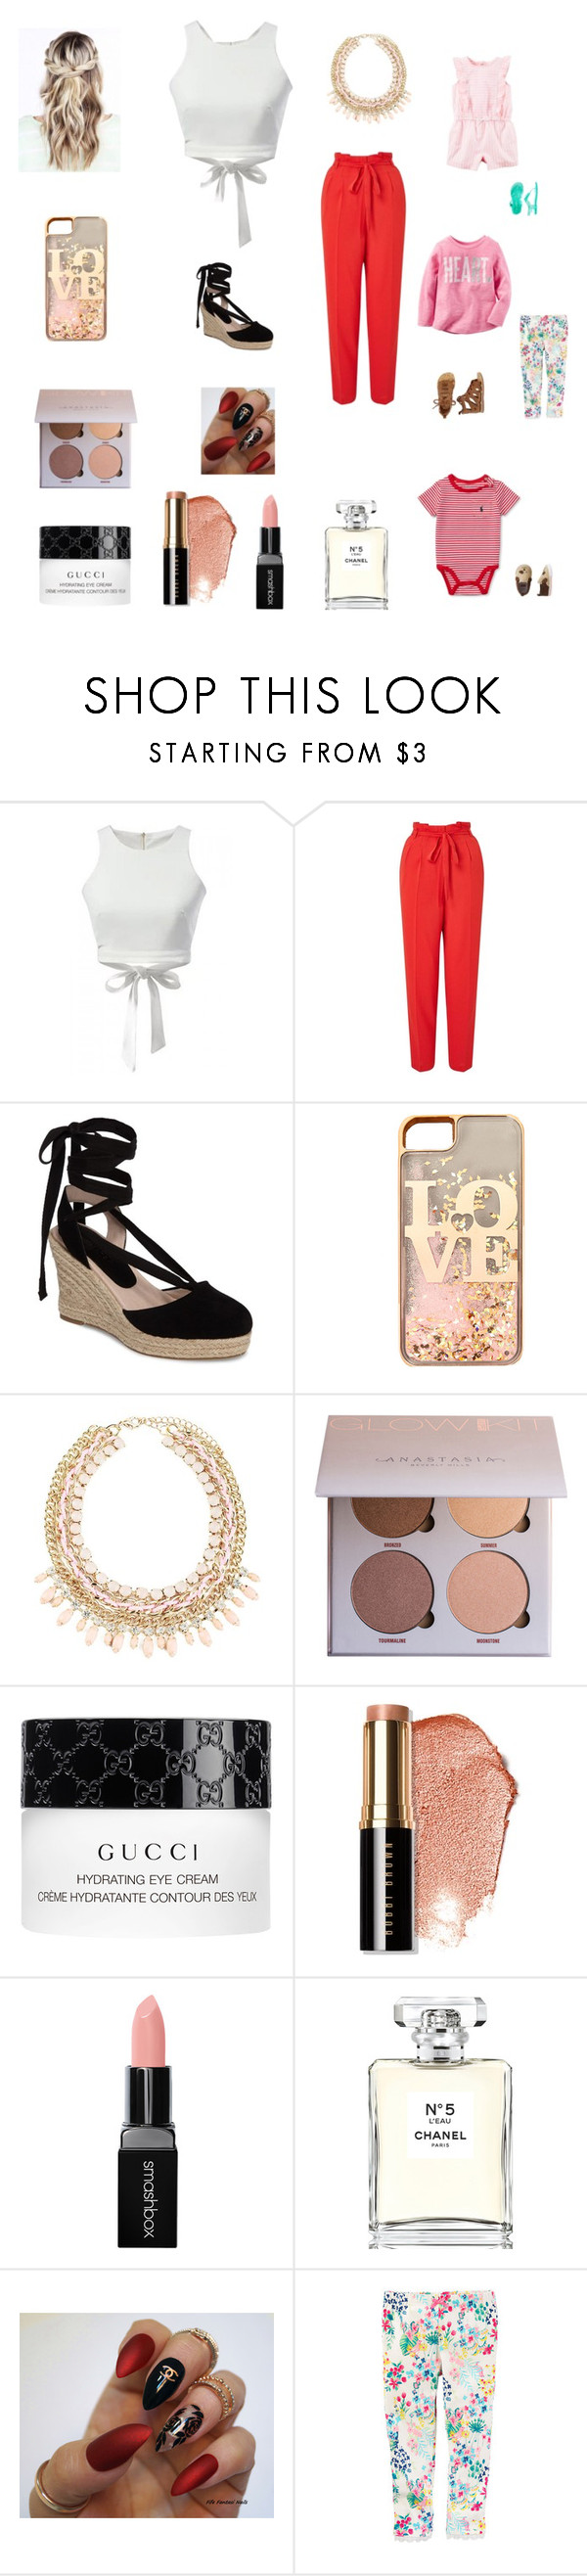 """""""Clean up and takeaway"""" by bellzellz ❤ liked on Polyvore featuring Miss Selfridge, Topshop, claire's, Gucci, Bobbi Brown Cosmetics, Smashbox, Chanel, Lord & Taylor and Carter's"""